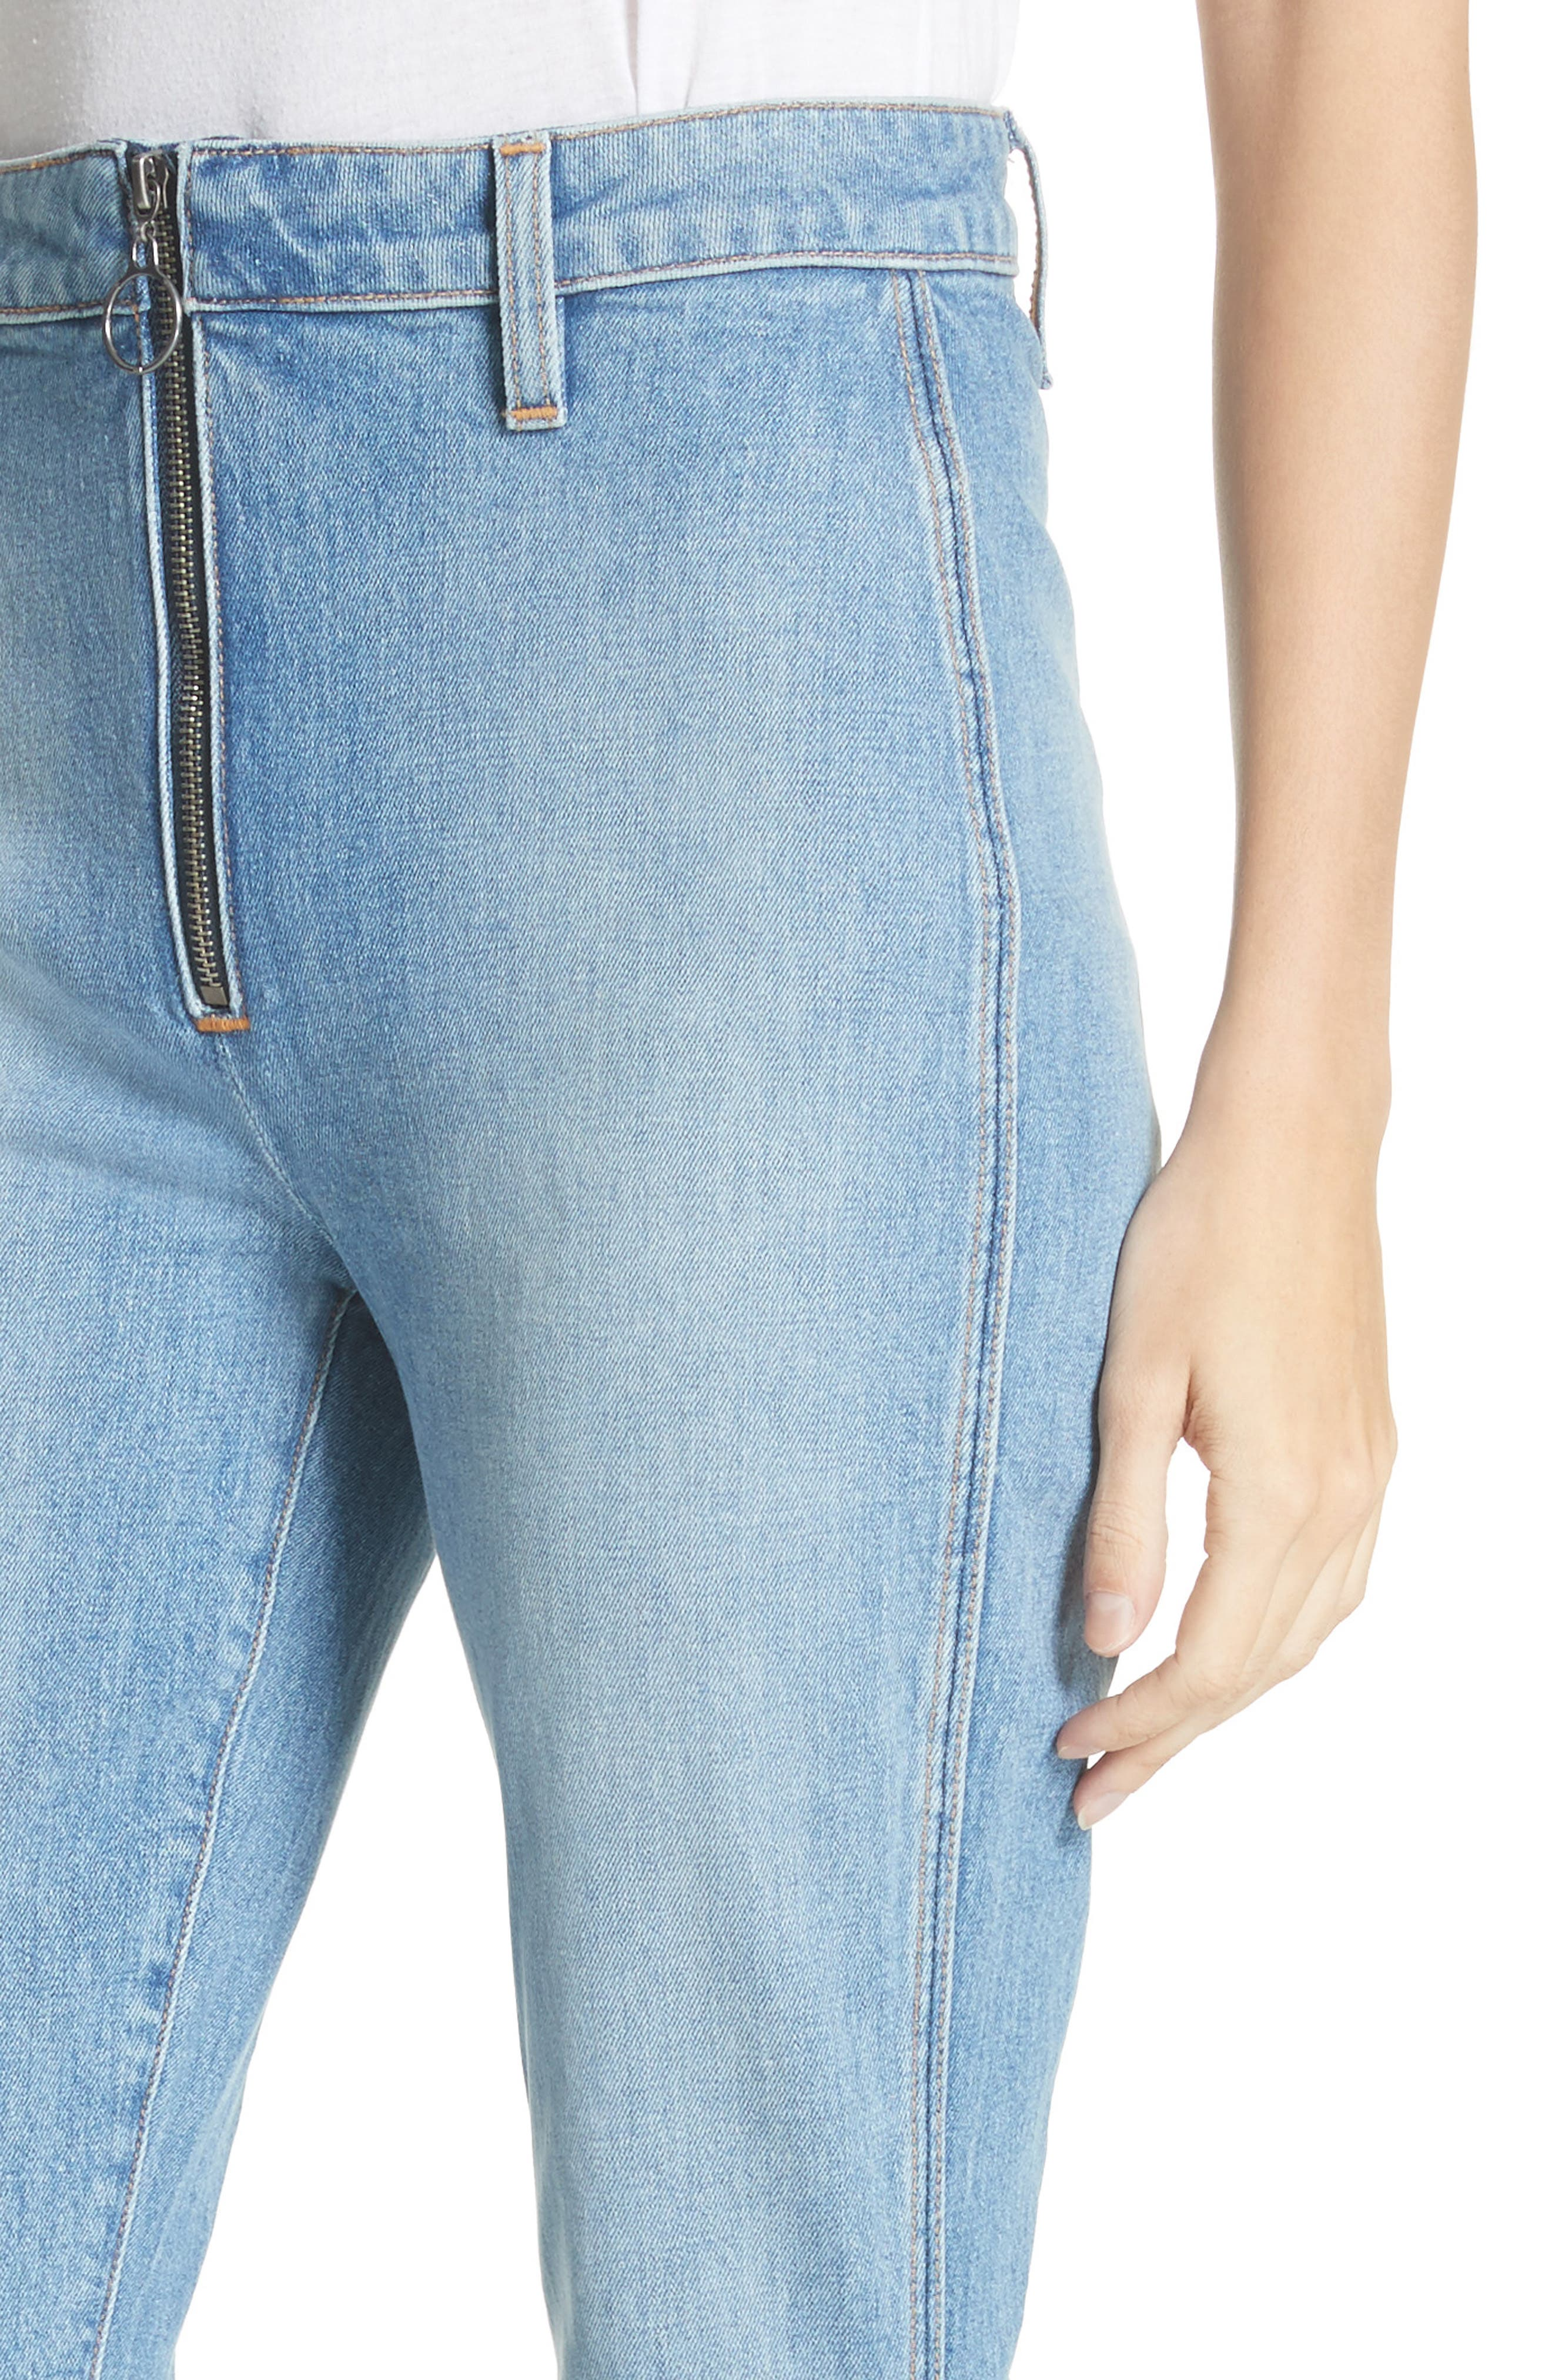 AO.LA Beautiful Exposed Zip Bell Bottom Jeans,                             Alternate thumbnail 4, color,                             Sweet Emotion